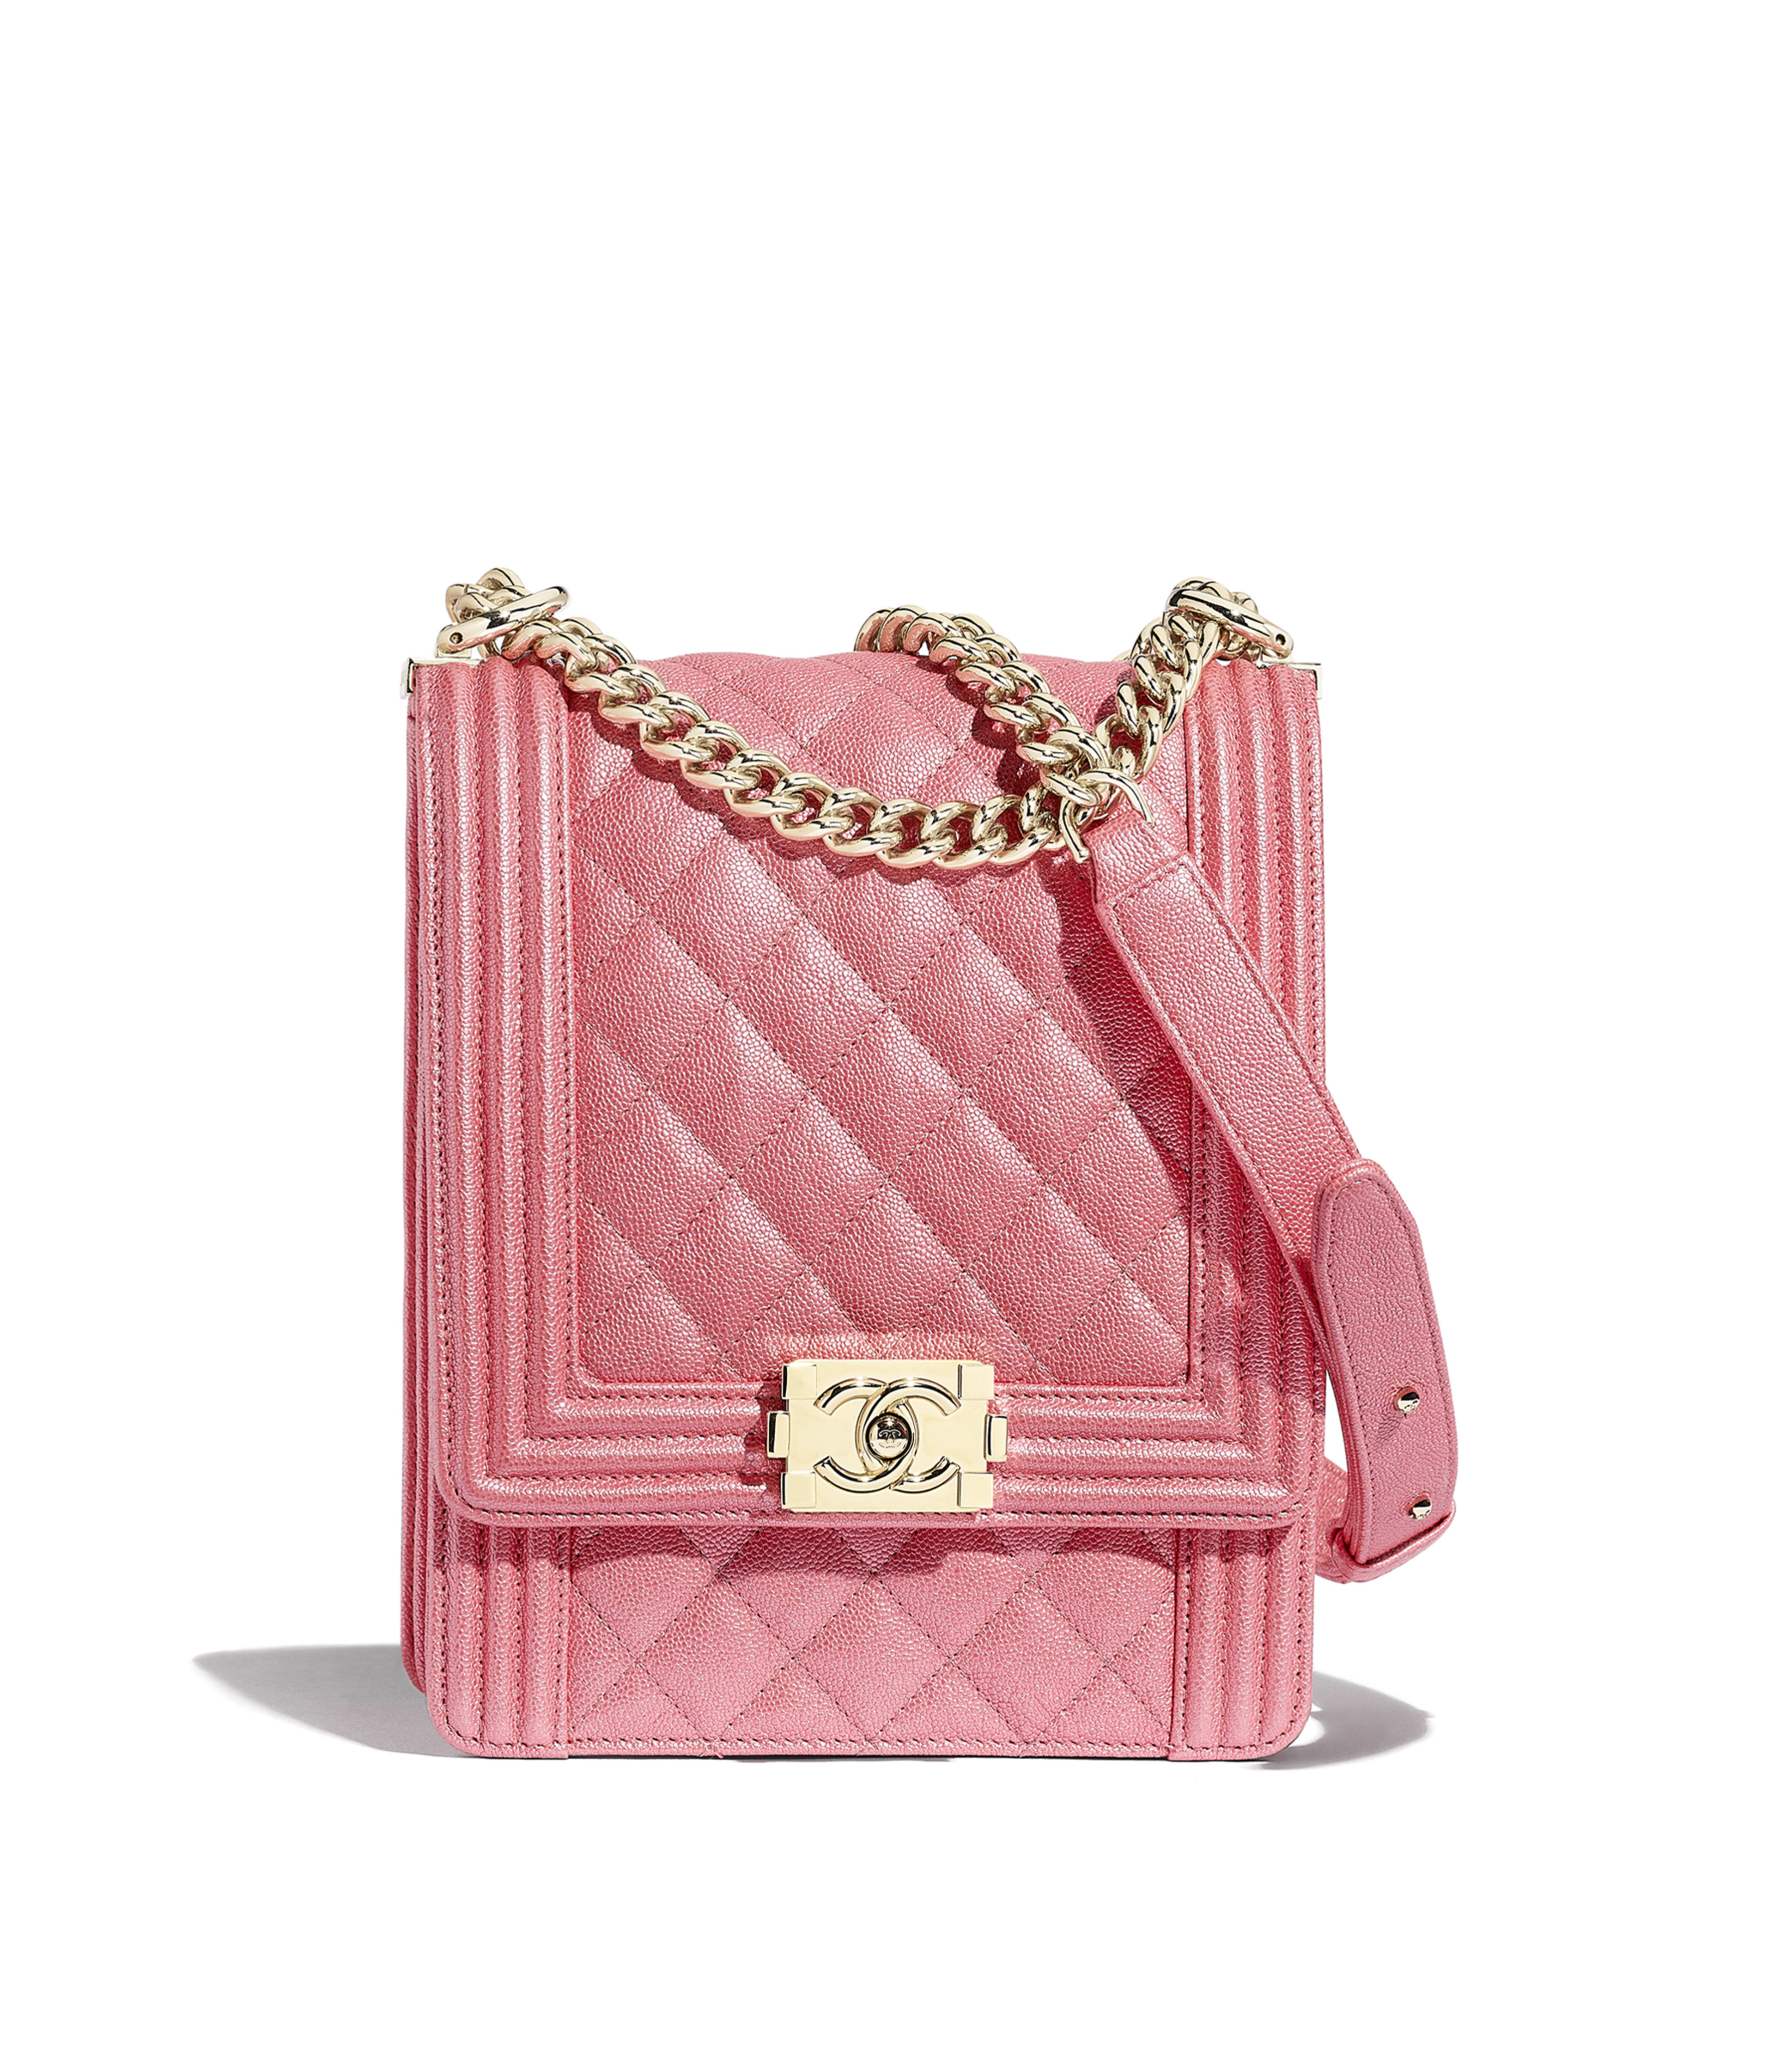 BOY CHANEL Handbag Metallic Grained Calfskin   Gold-Tone Metal, Pink Ref.  AS0130B00110N0432 5ec9a27d16